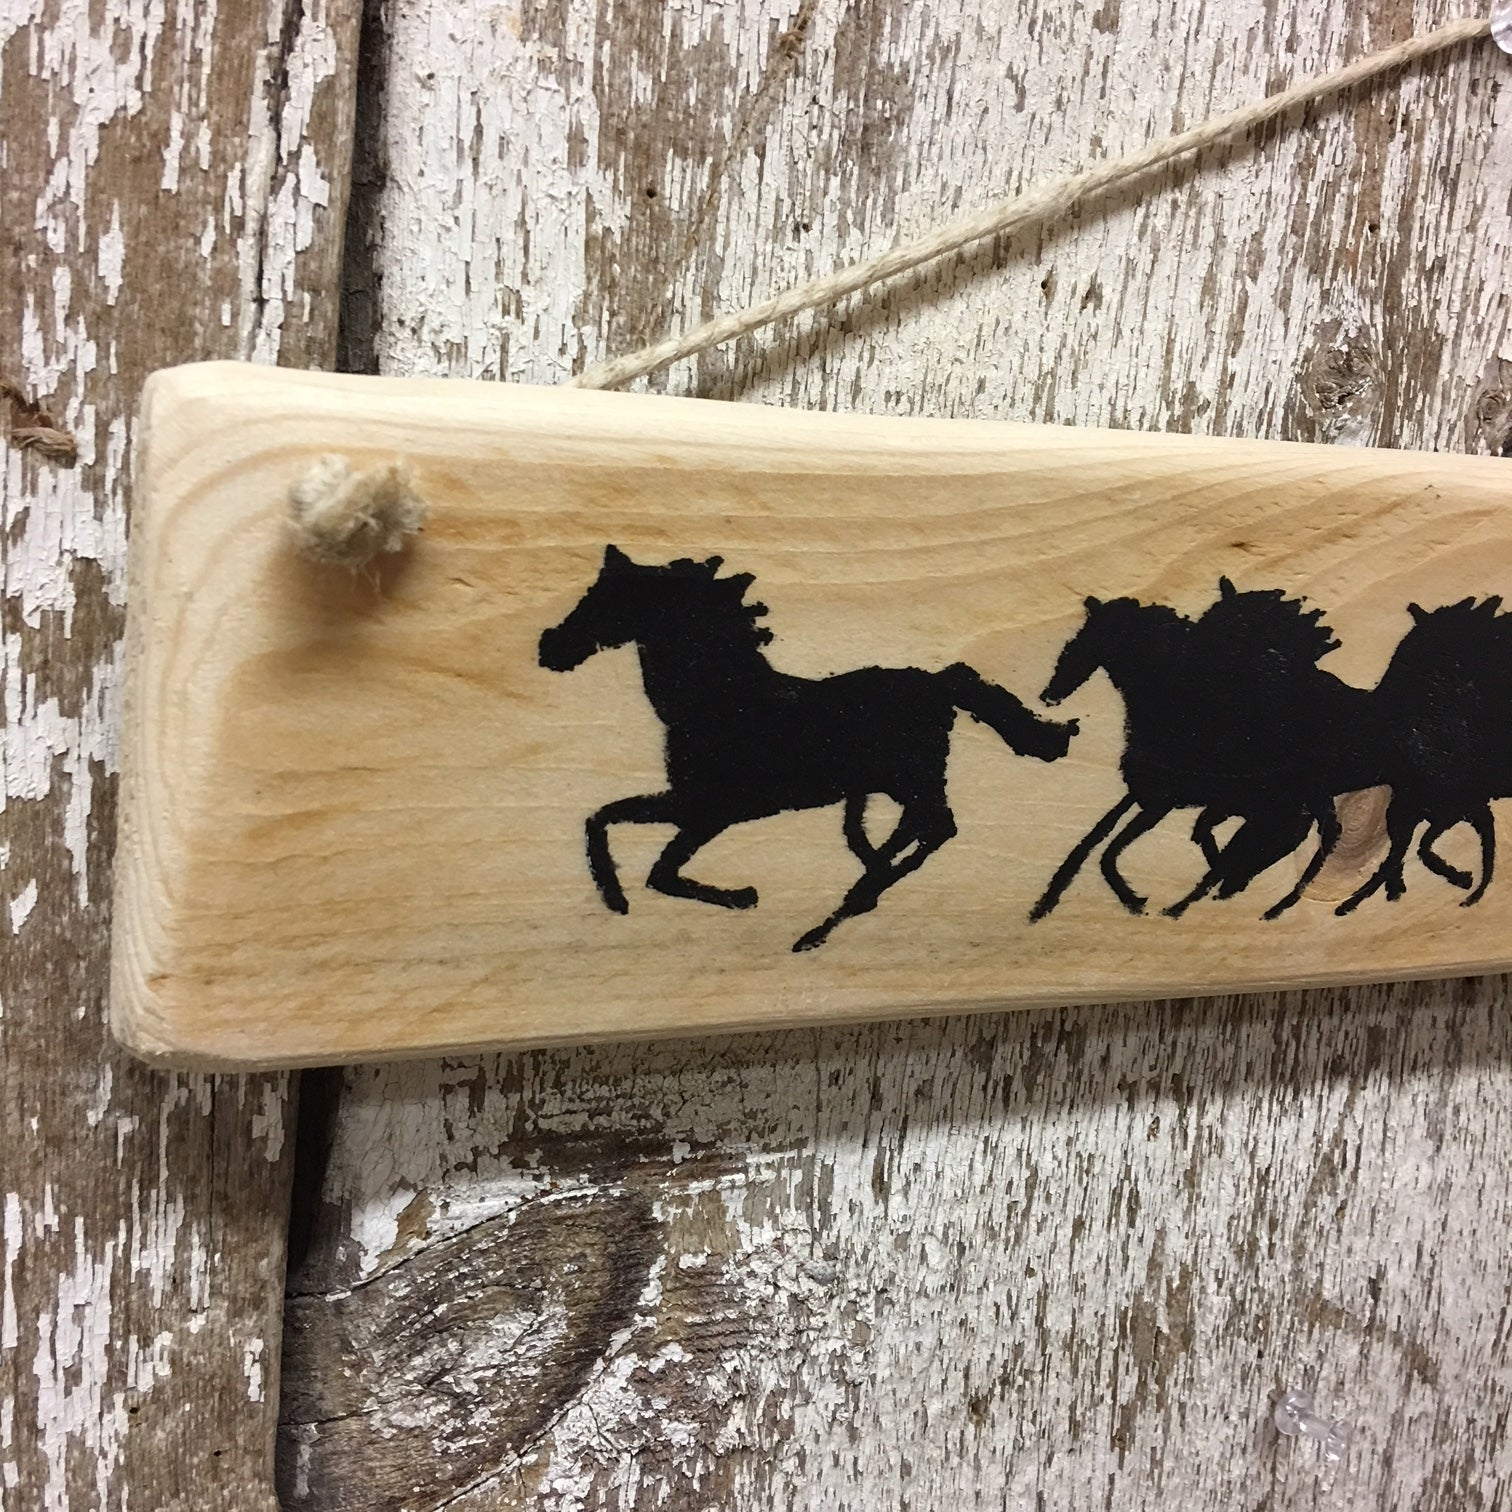 gifts for horse lovers running horses sign reclaimed wood & Gift Ideas for Horse Lovers - Running Horses Reclaimed Wood Sign ...